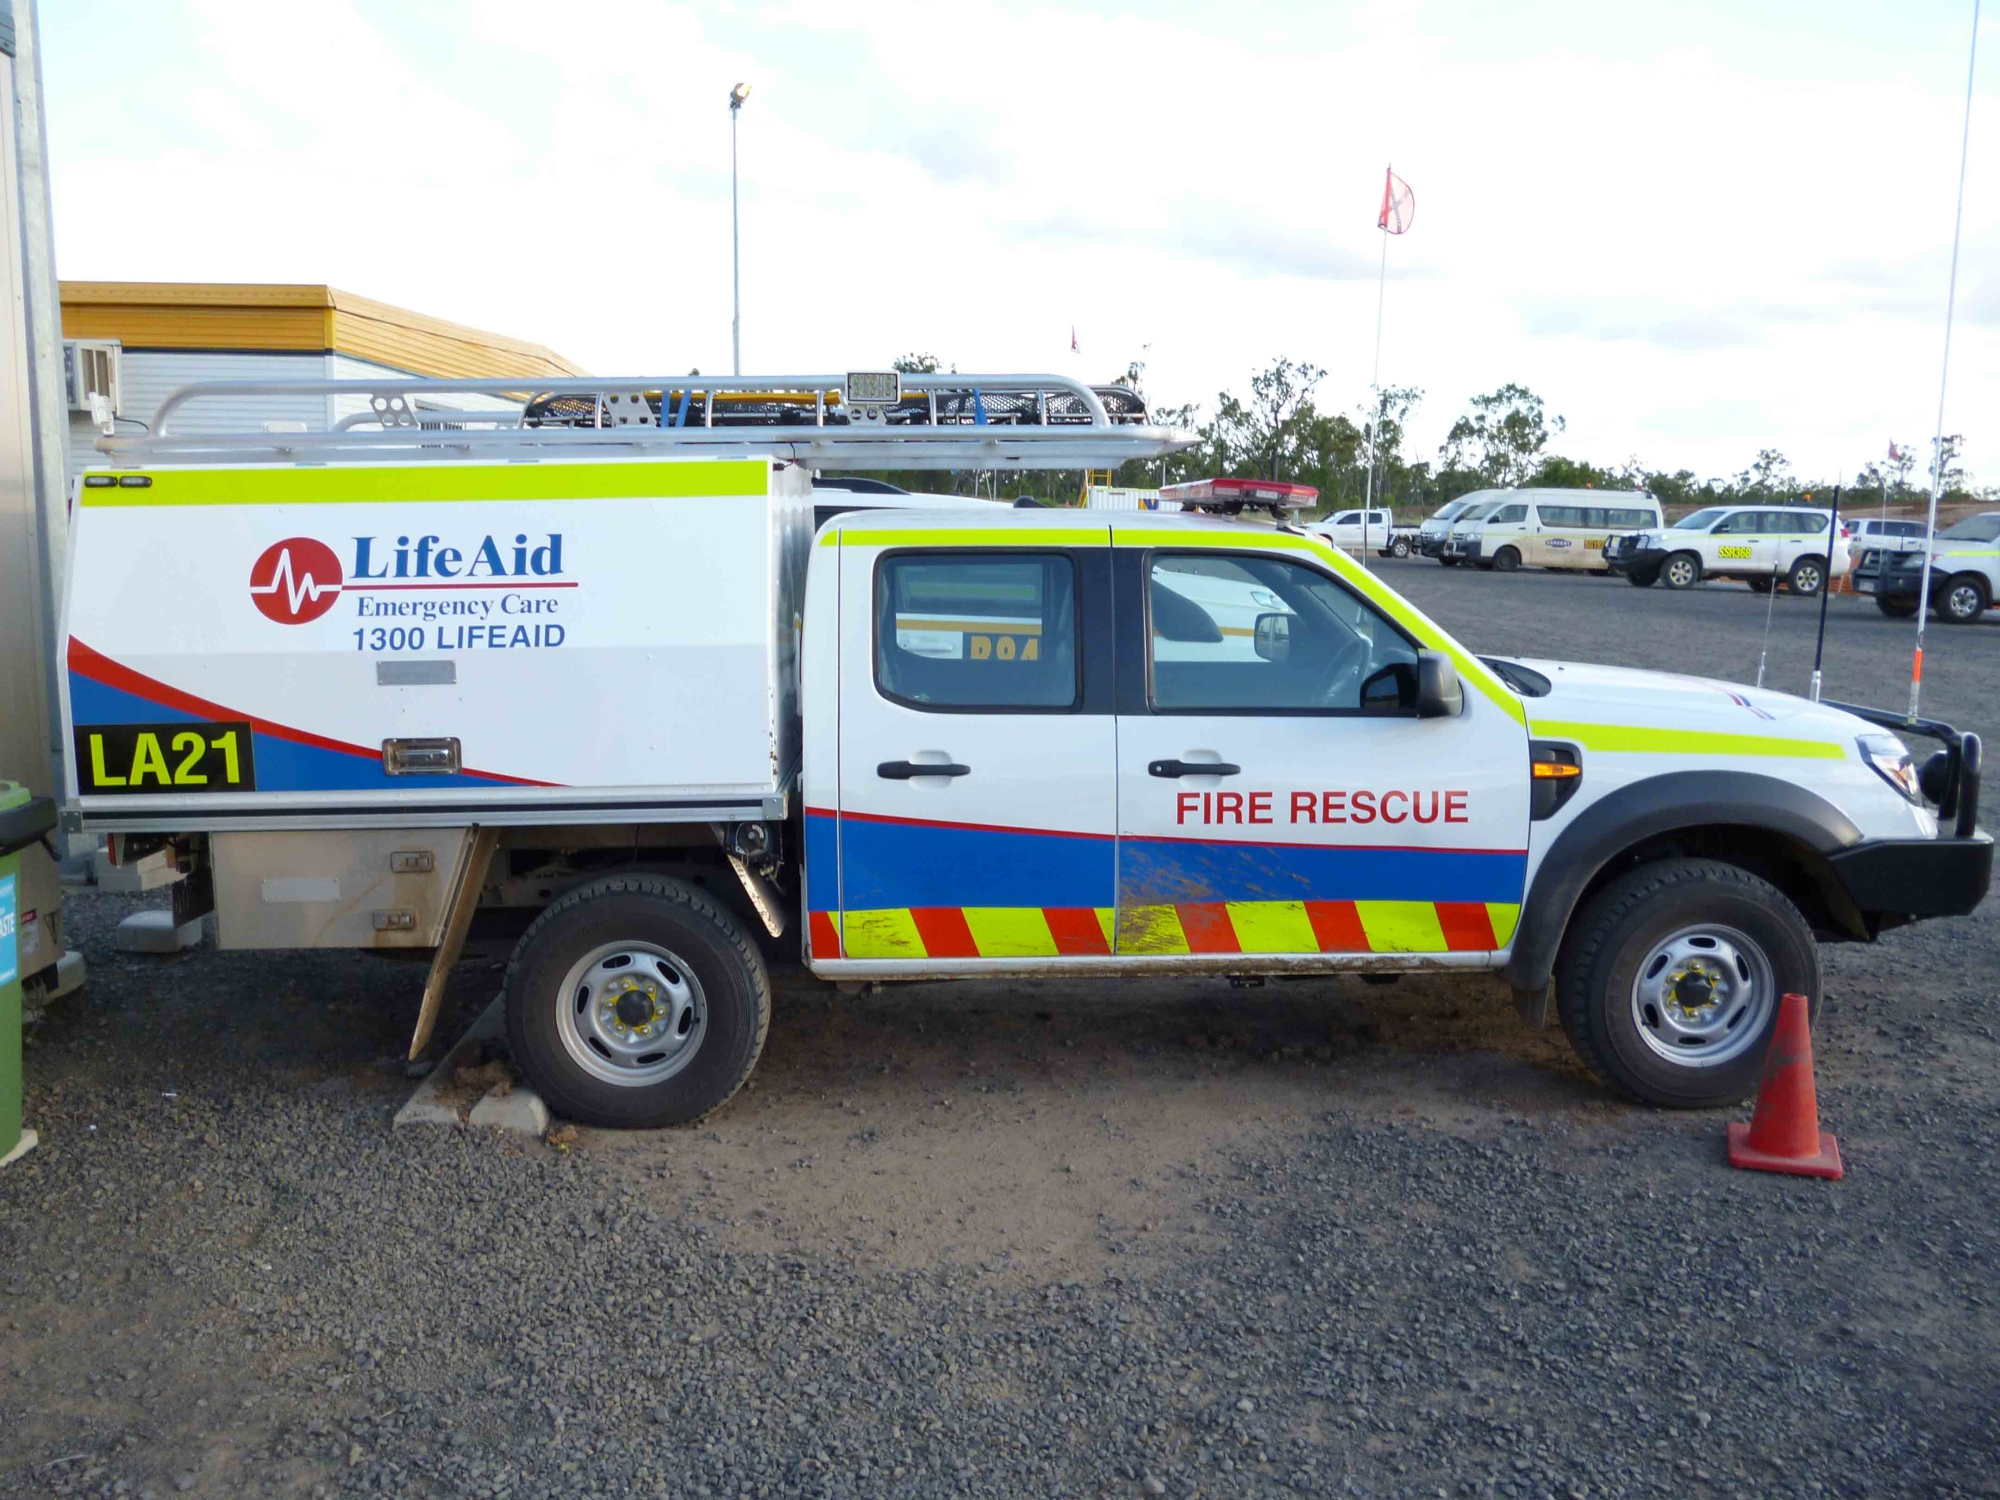 LifeAid fire rescue vehicle